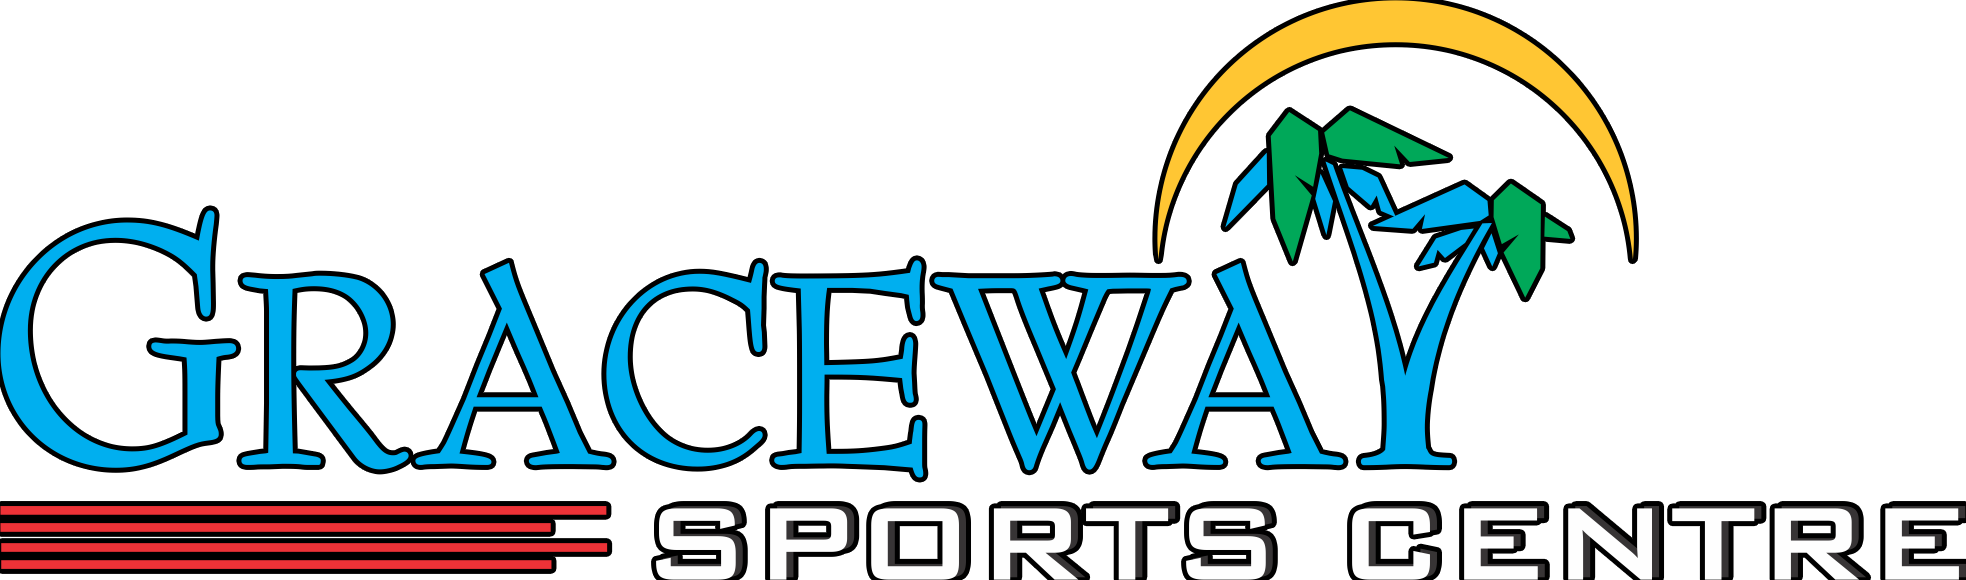 Upcoming Events | Co-Ed Soccer | Graceway Sports Center